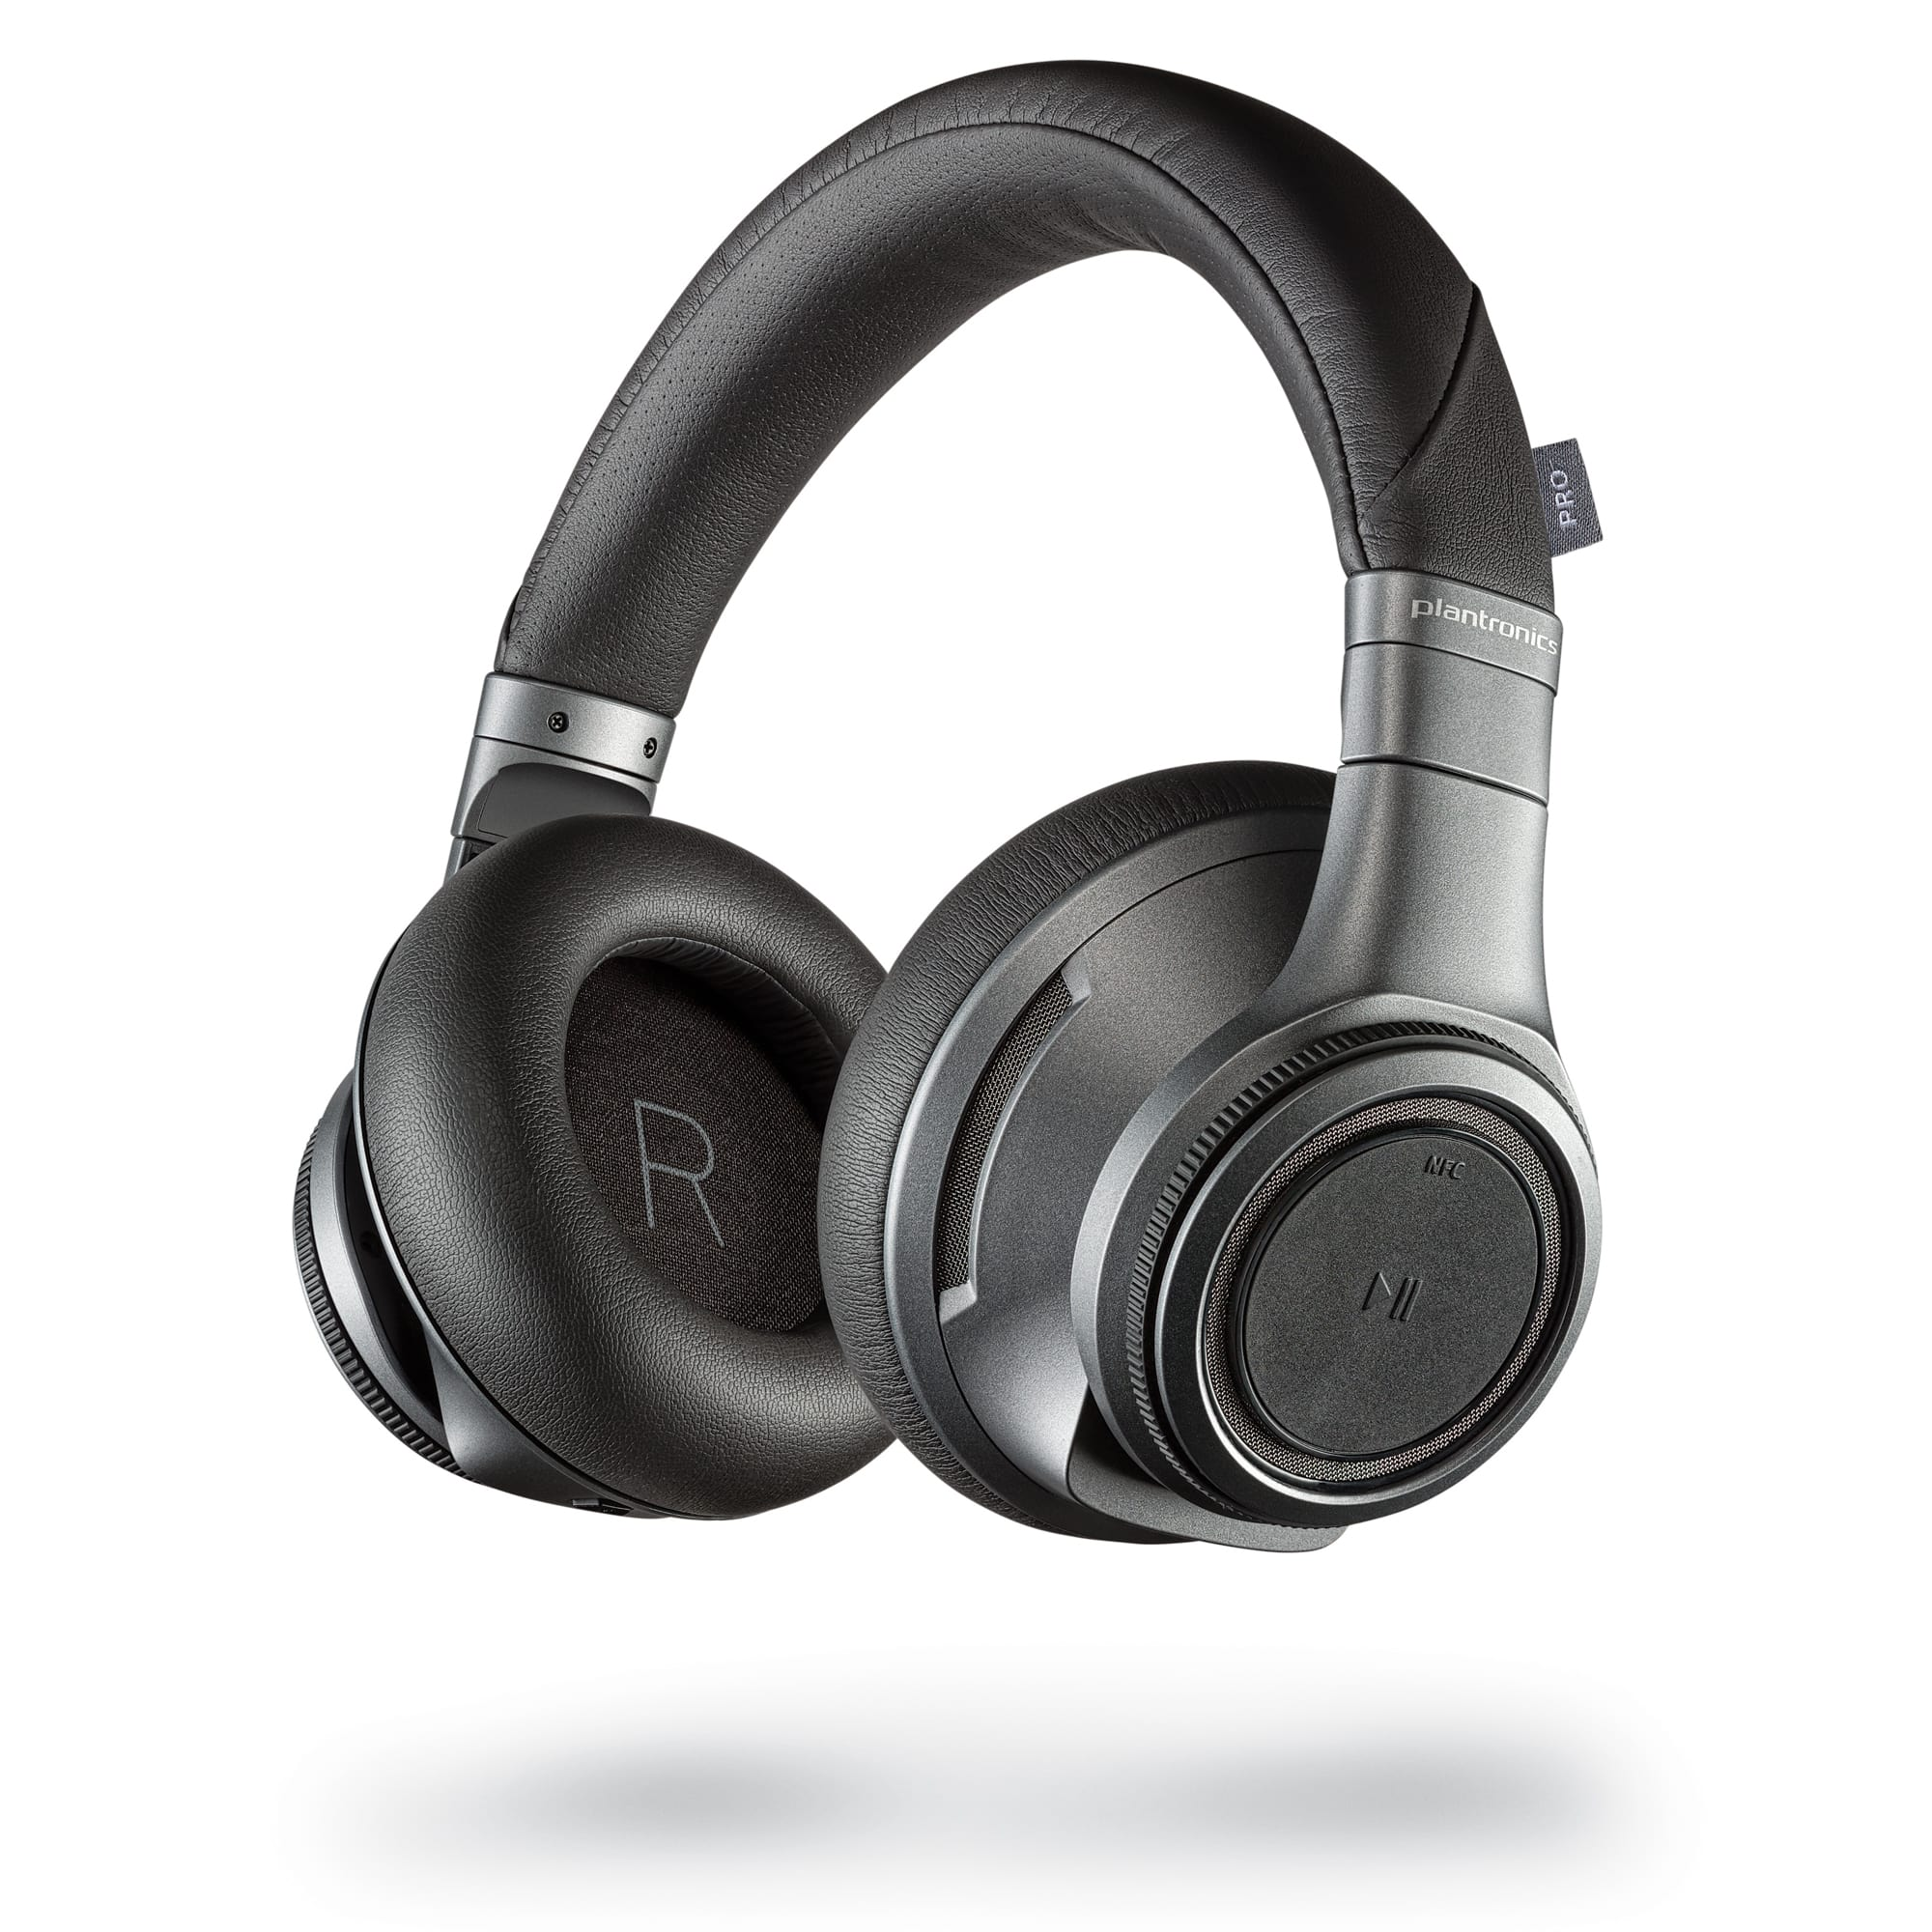 Bluetooth stereo noise-cancelling earphones - bluetooth earphones noise cancelation